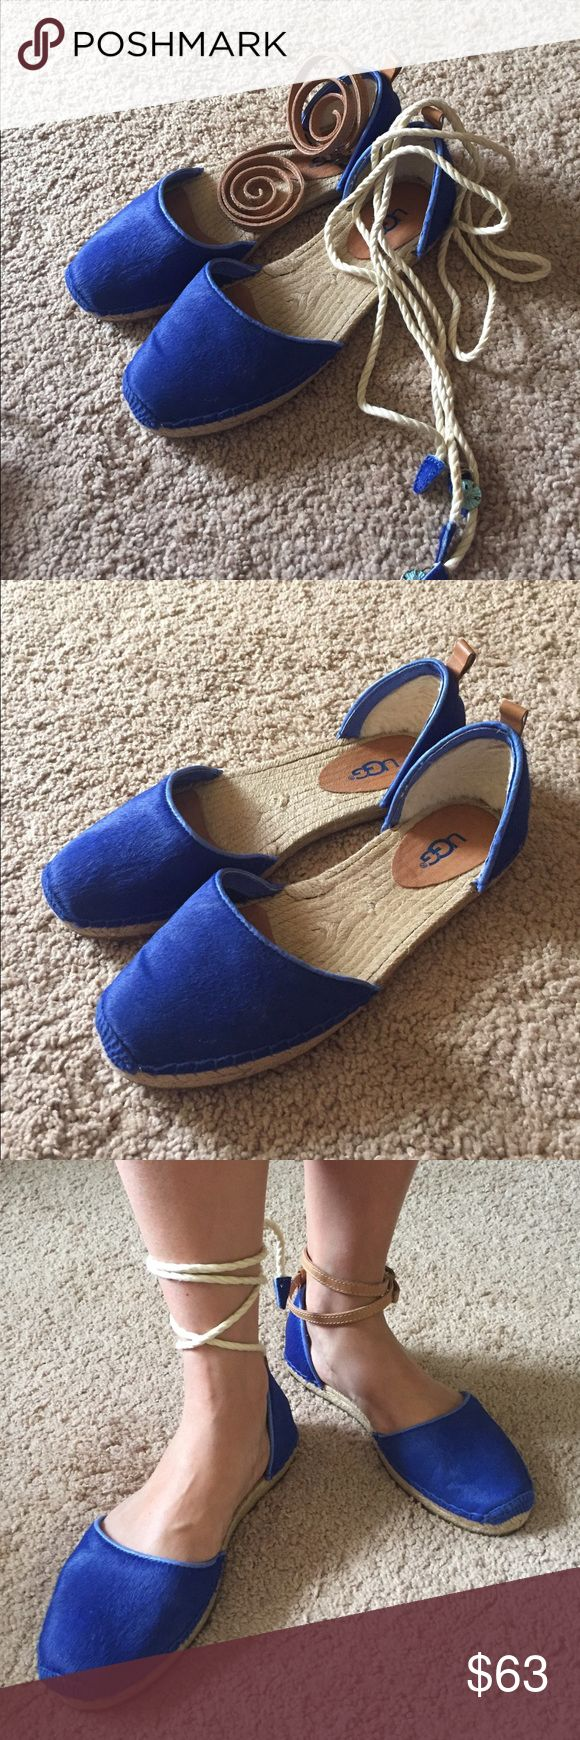 Ugg Australia blue espadrille flats ankle strap Only worn once excellent condition. Nice blue color espadrilles. It comes with two sets of strap. leather pair and white pair. Some reason leather strap is 8, must be I received wrong one. I don't see any problem though. I worn once without strap, you can remove the strap and wear it. I will consider reasonable offer. Thank you. UGG Shoes Espadrilles